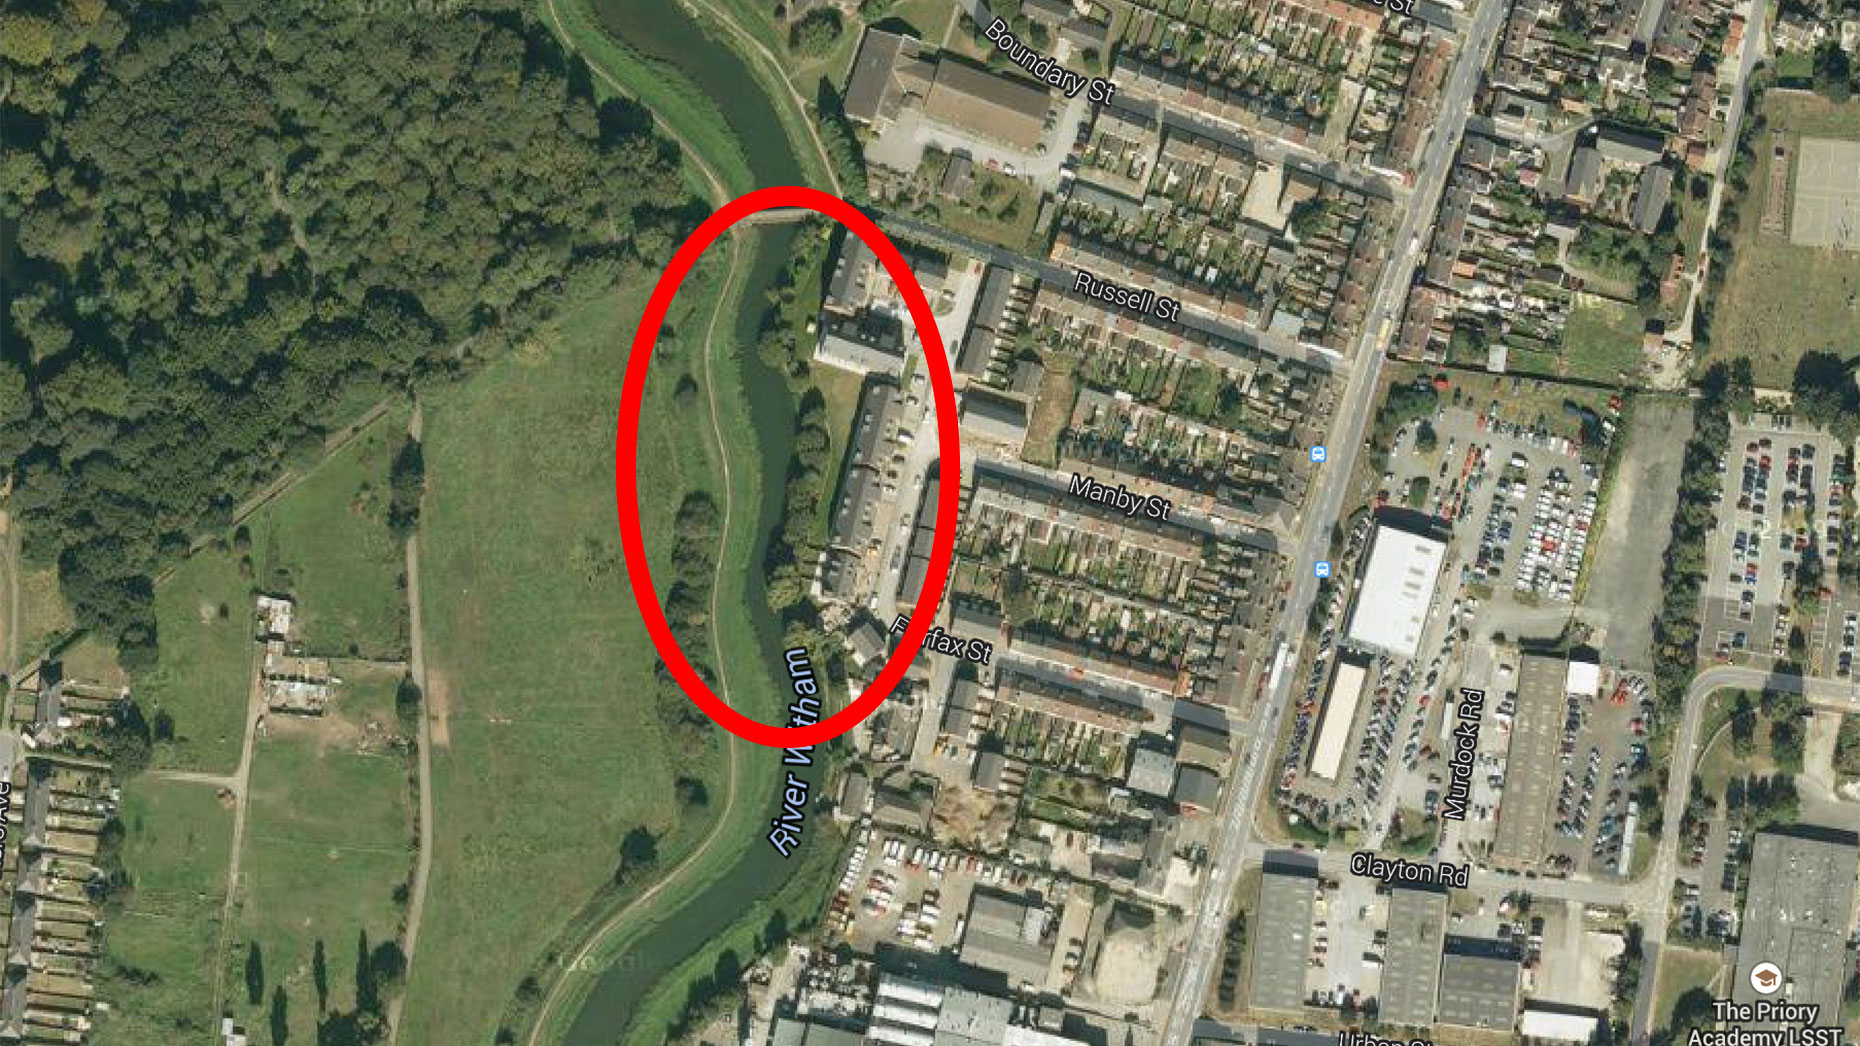 The area where the body was found and where police are investigating. Map data: Google